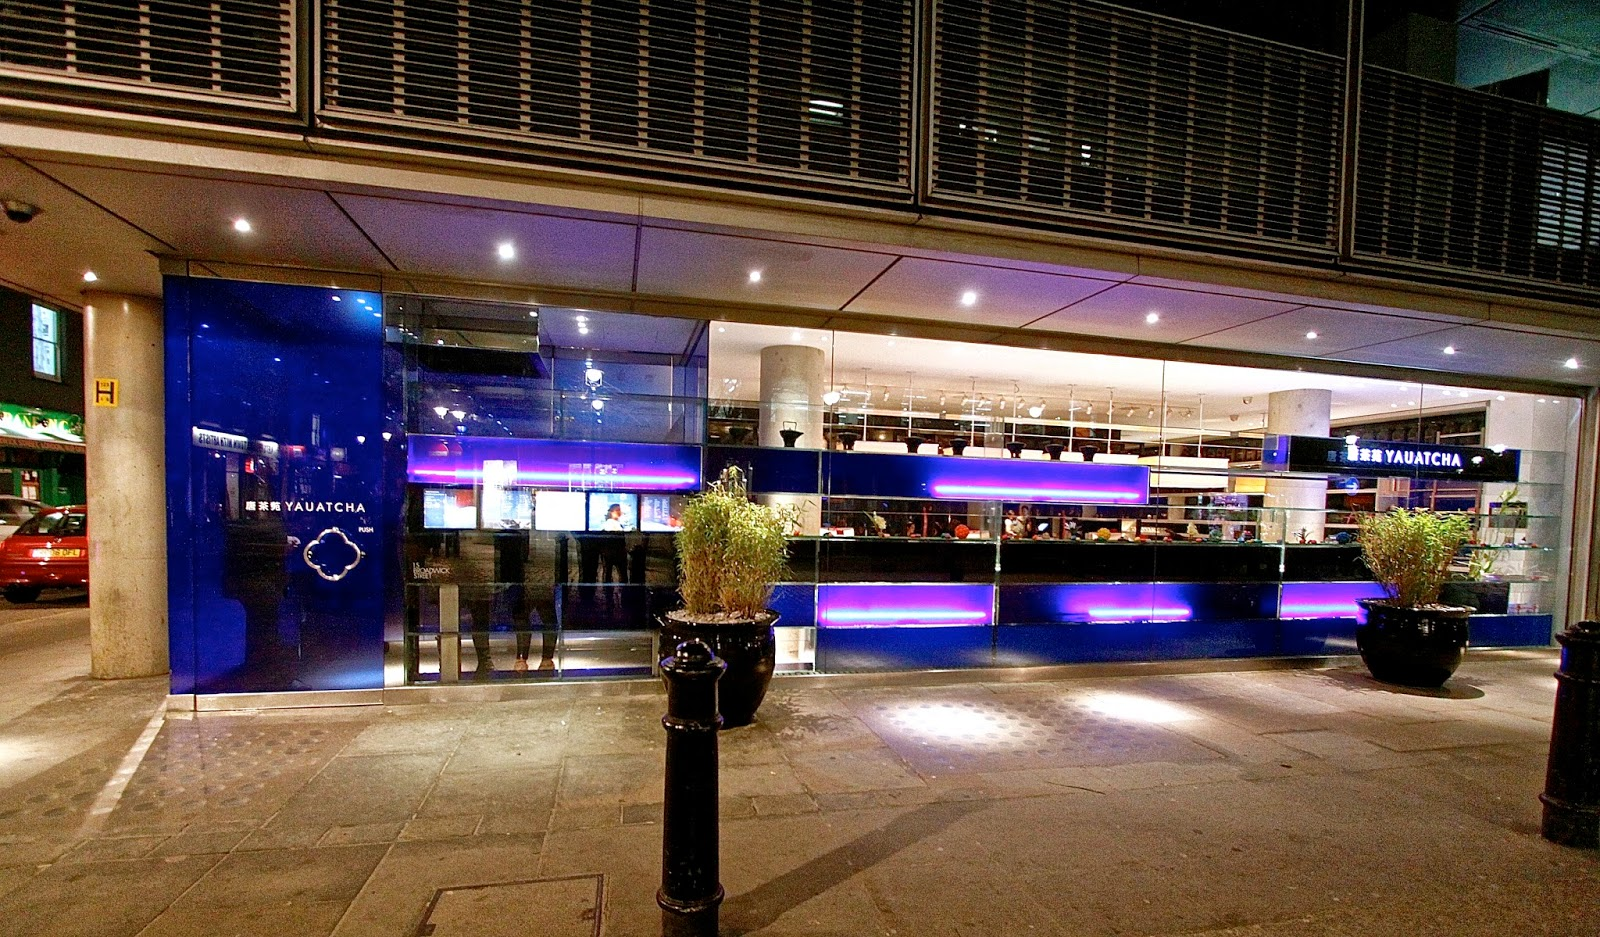 The London Foodie: Yauatcha - 10 Years On